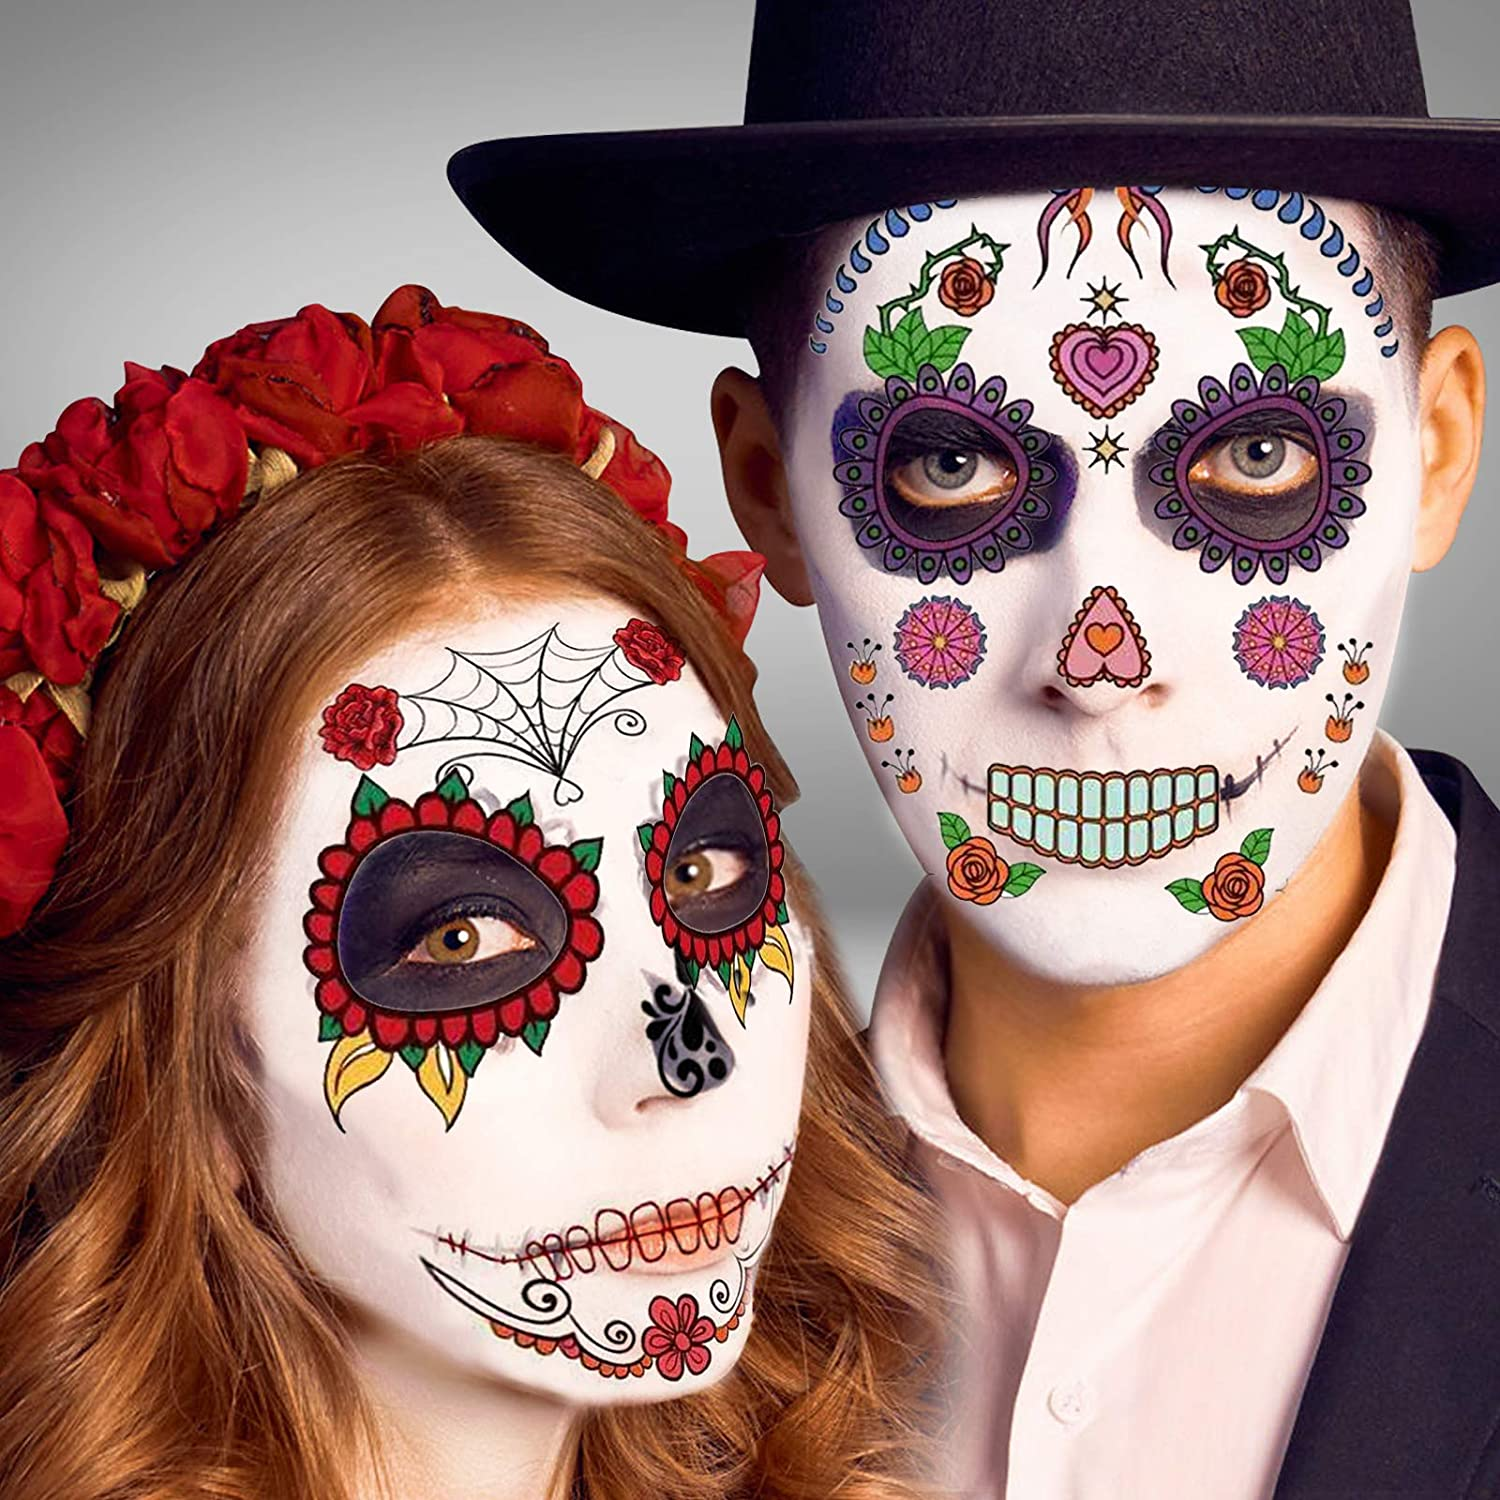 Day of the Dead Face Skeleton Tattoos – 12 Pack Day of the Dead Costume Makeup Kit, Halloween Temporary Sugar Skull Costume Makeup Tattoos for Men Women Adults